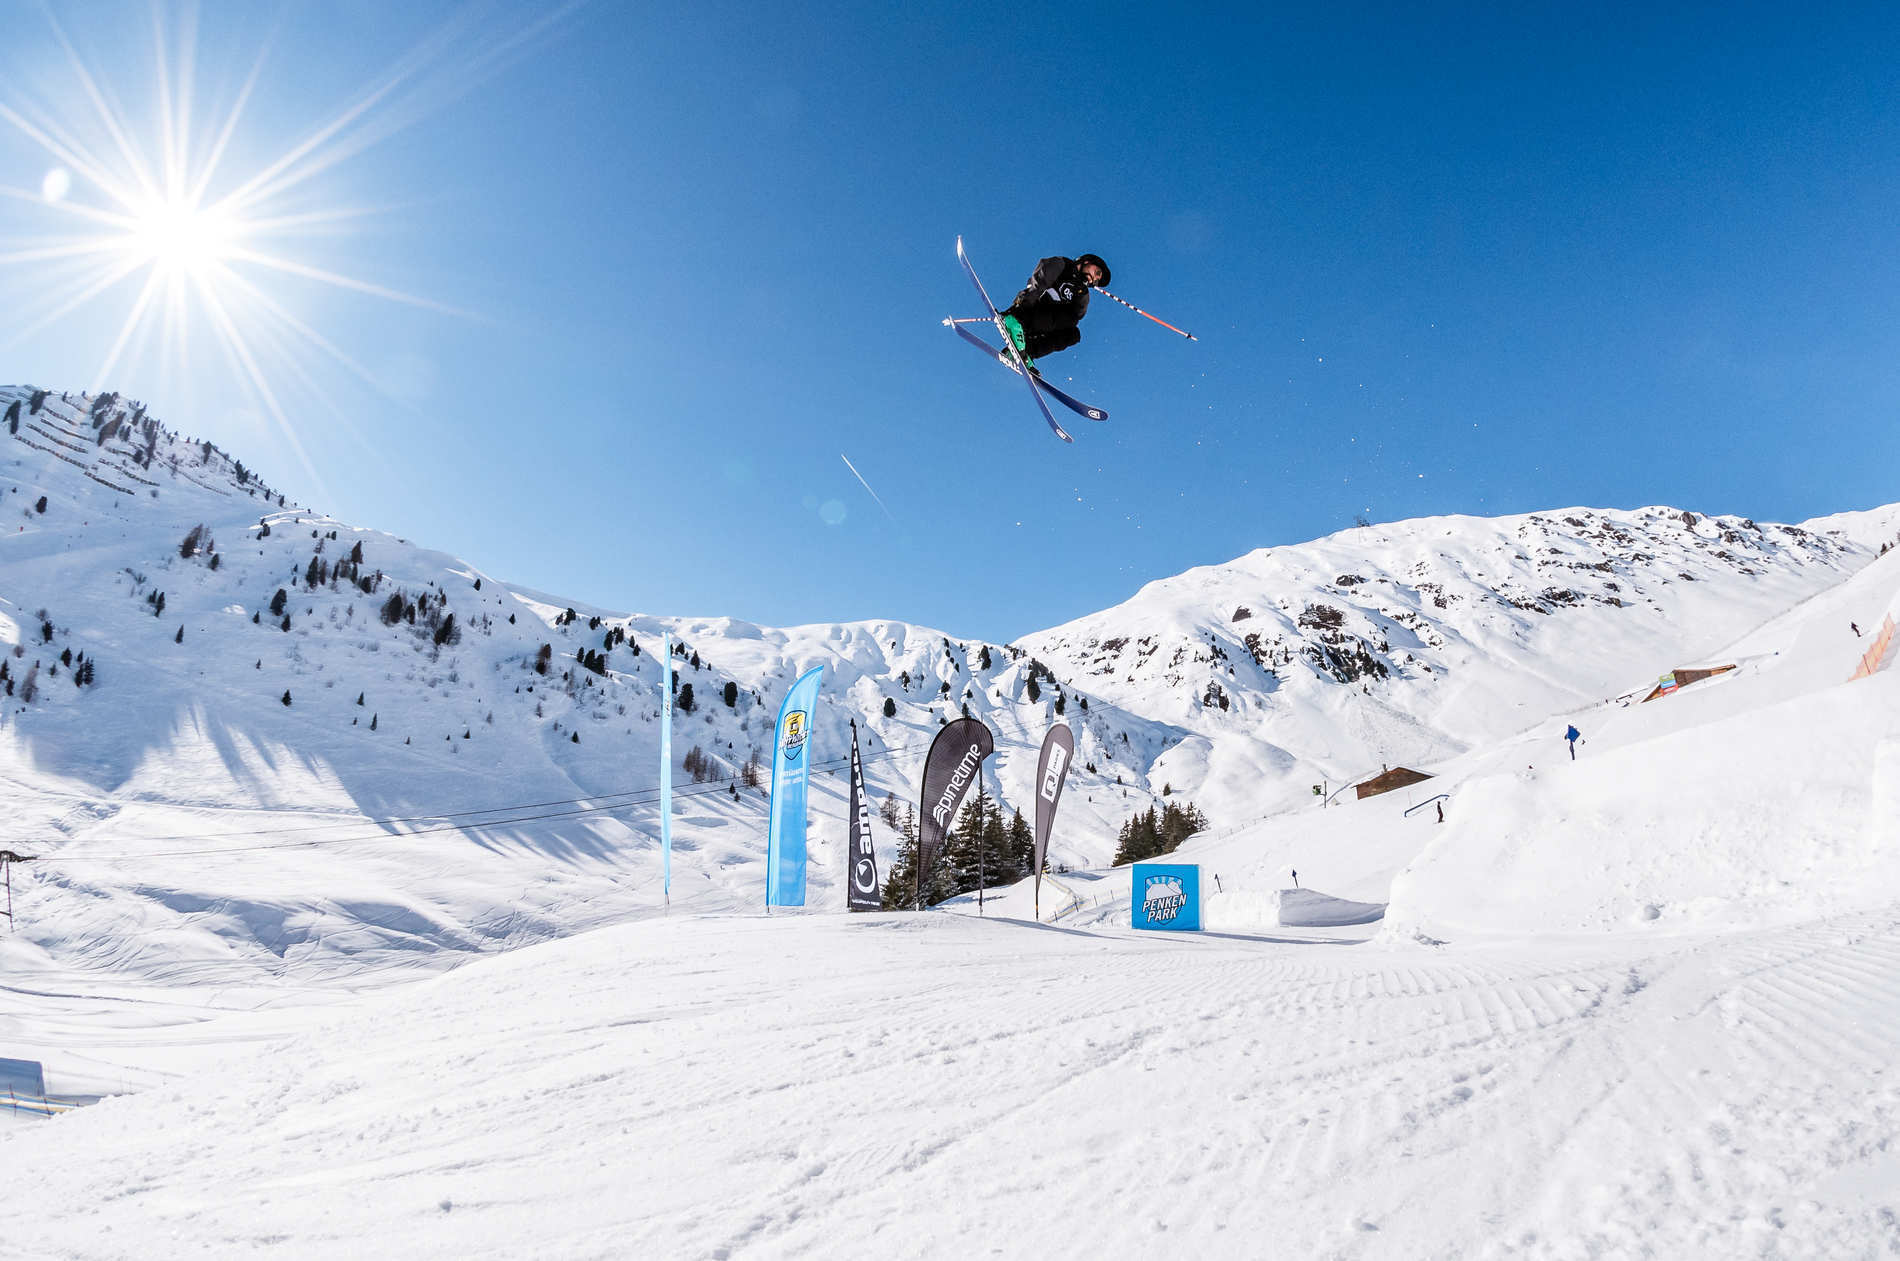 web mayrhofen 23 02 2019 action fs unknown rider christian riefenberg qparks 6